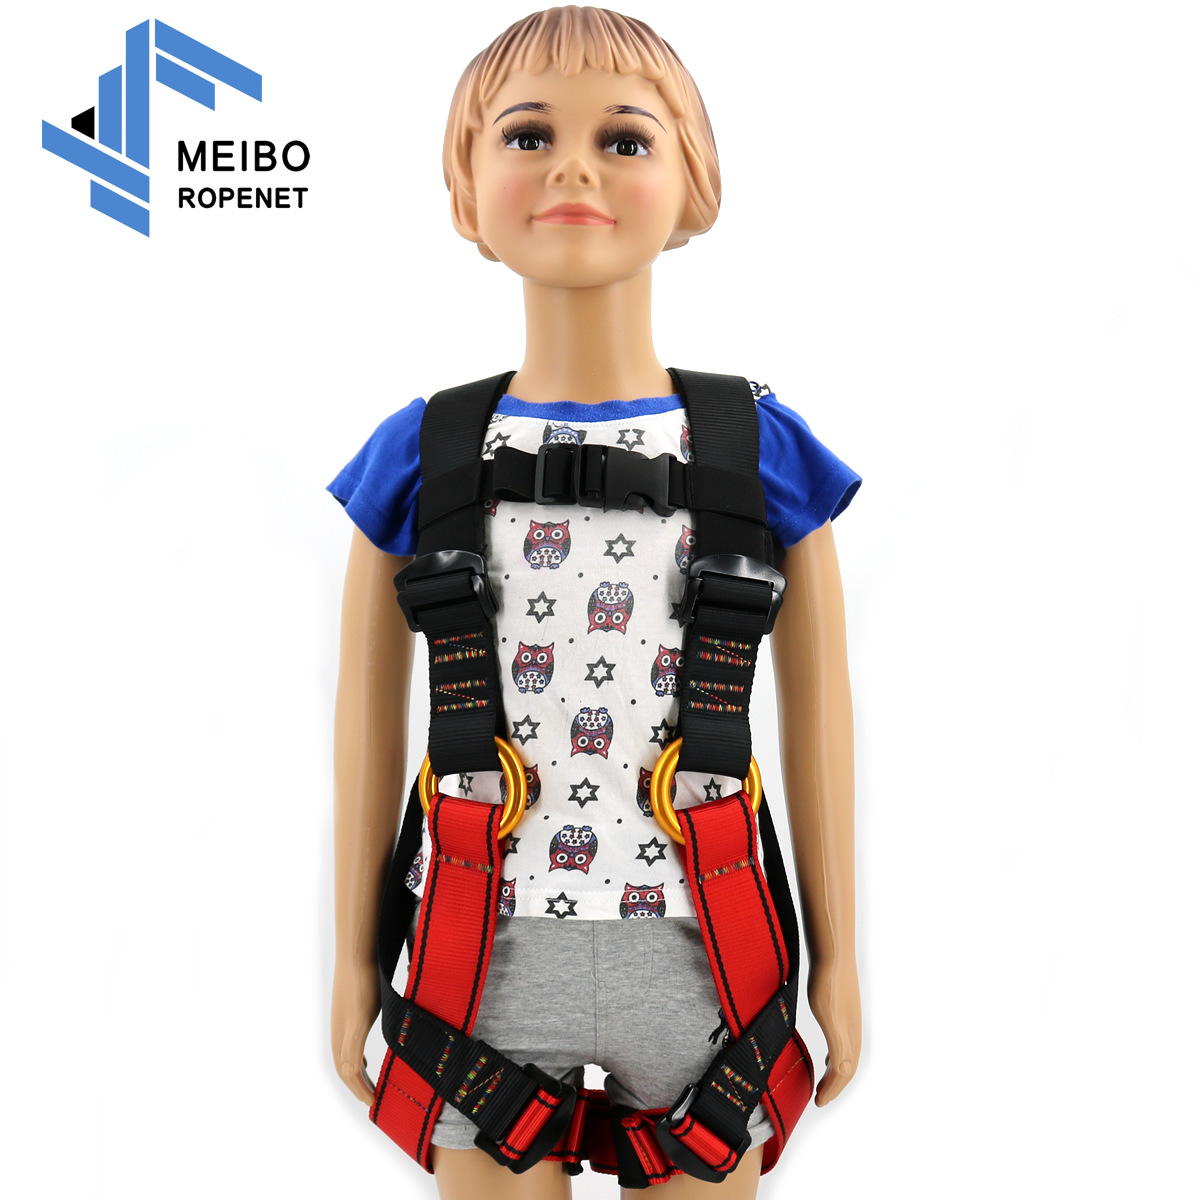 Harness Bust Baby Seat Belt Child Outdoor Rock Climbing Harness Rappelling Equipment Harness Seat Belt with Carrying Bag